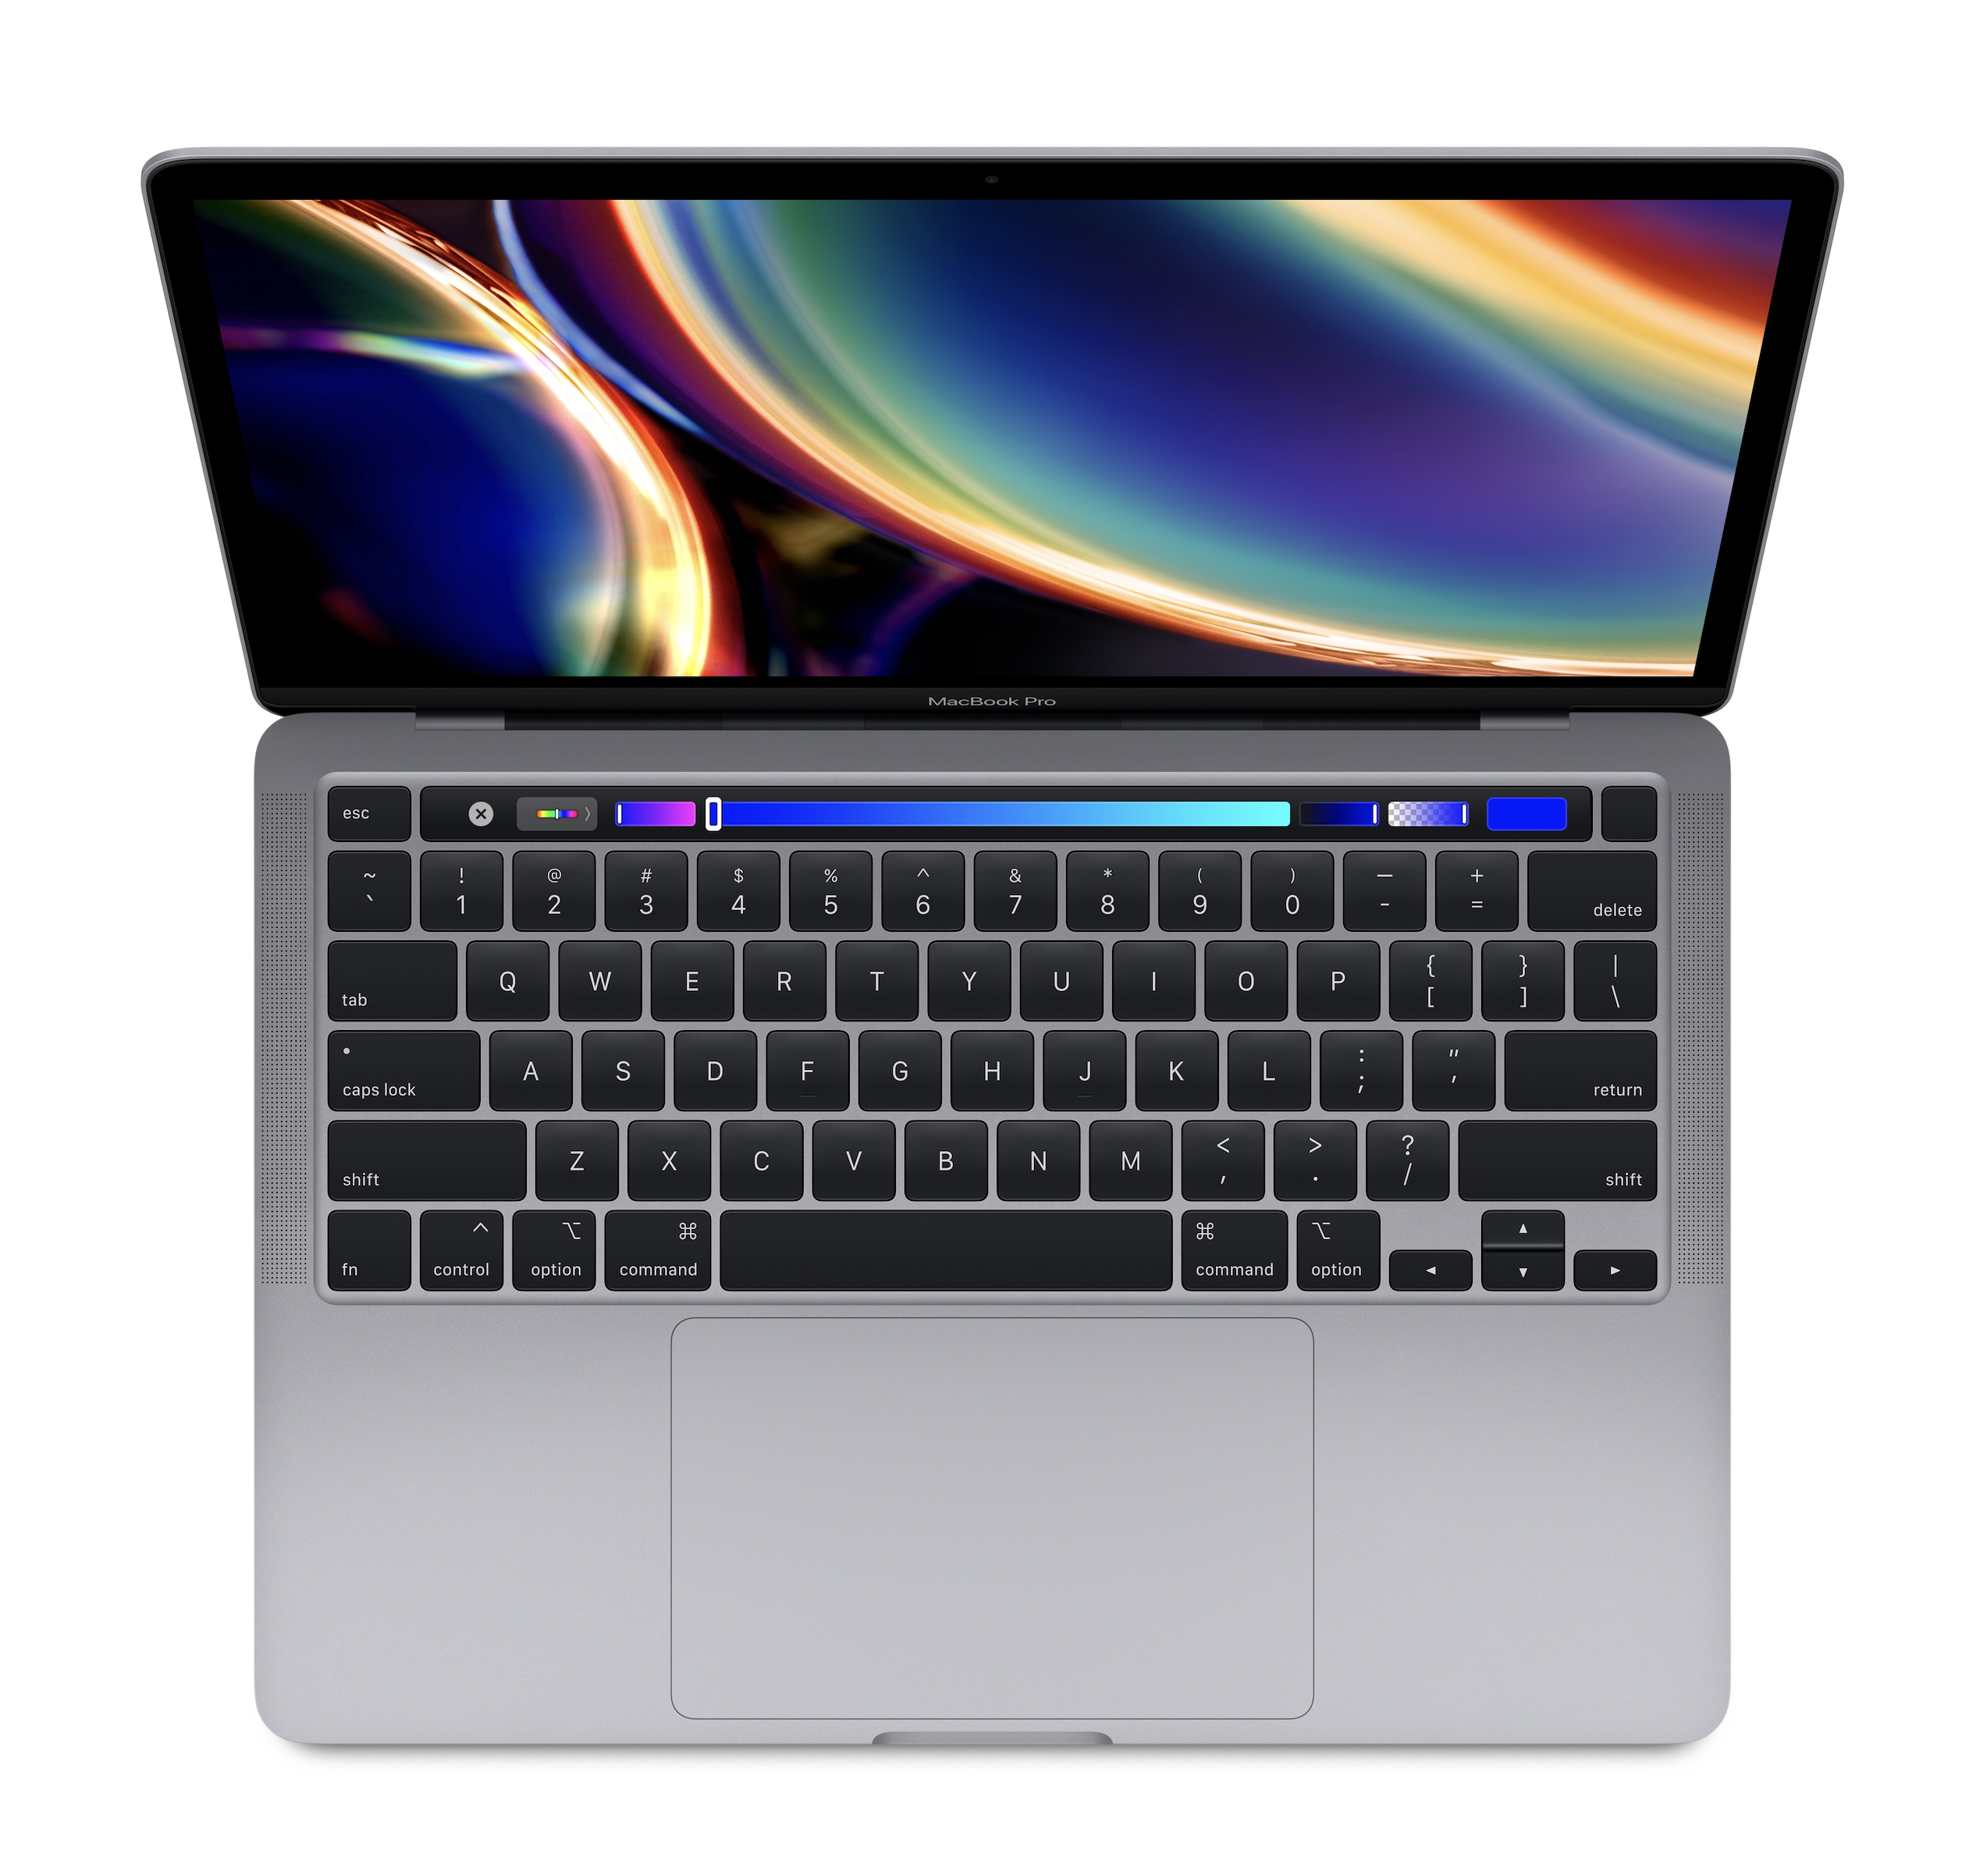 Graduation Bundle MacBook Pro 2.0GHz (Space Gray) 1TB with AppleCare+ and FREE HD